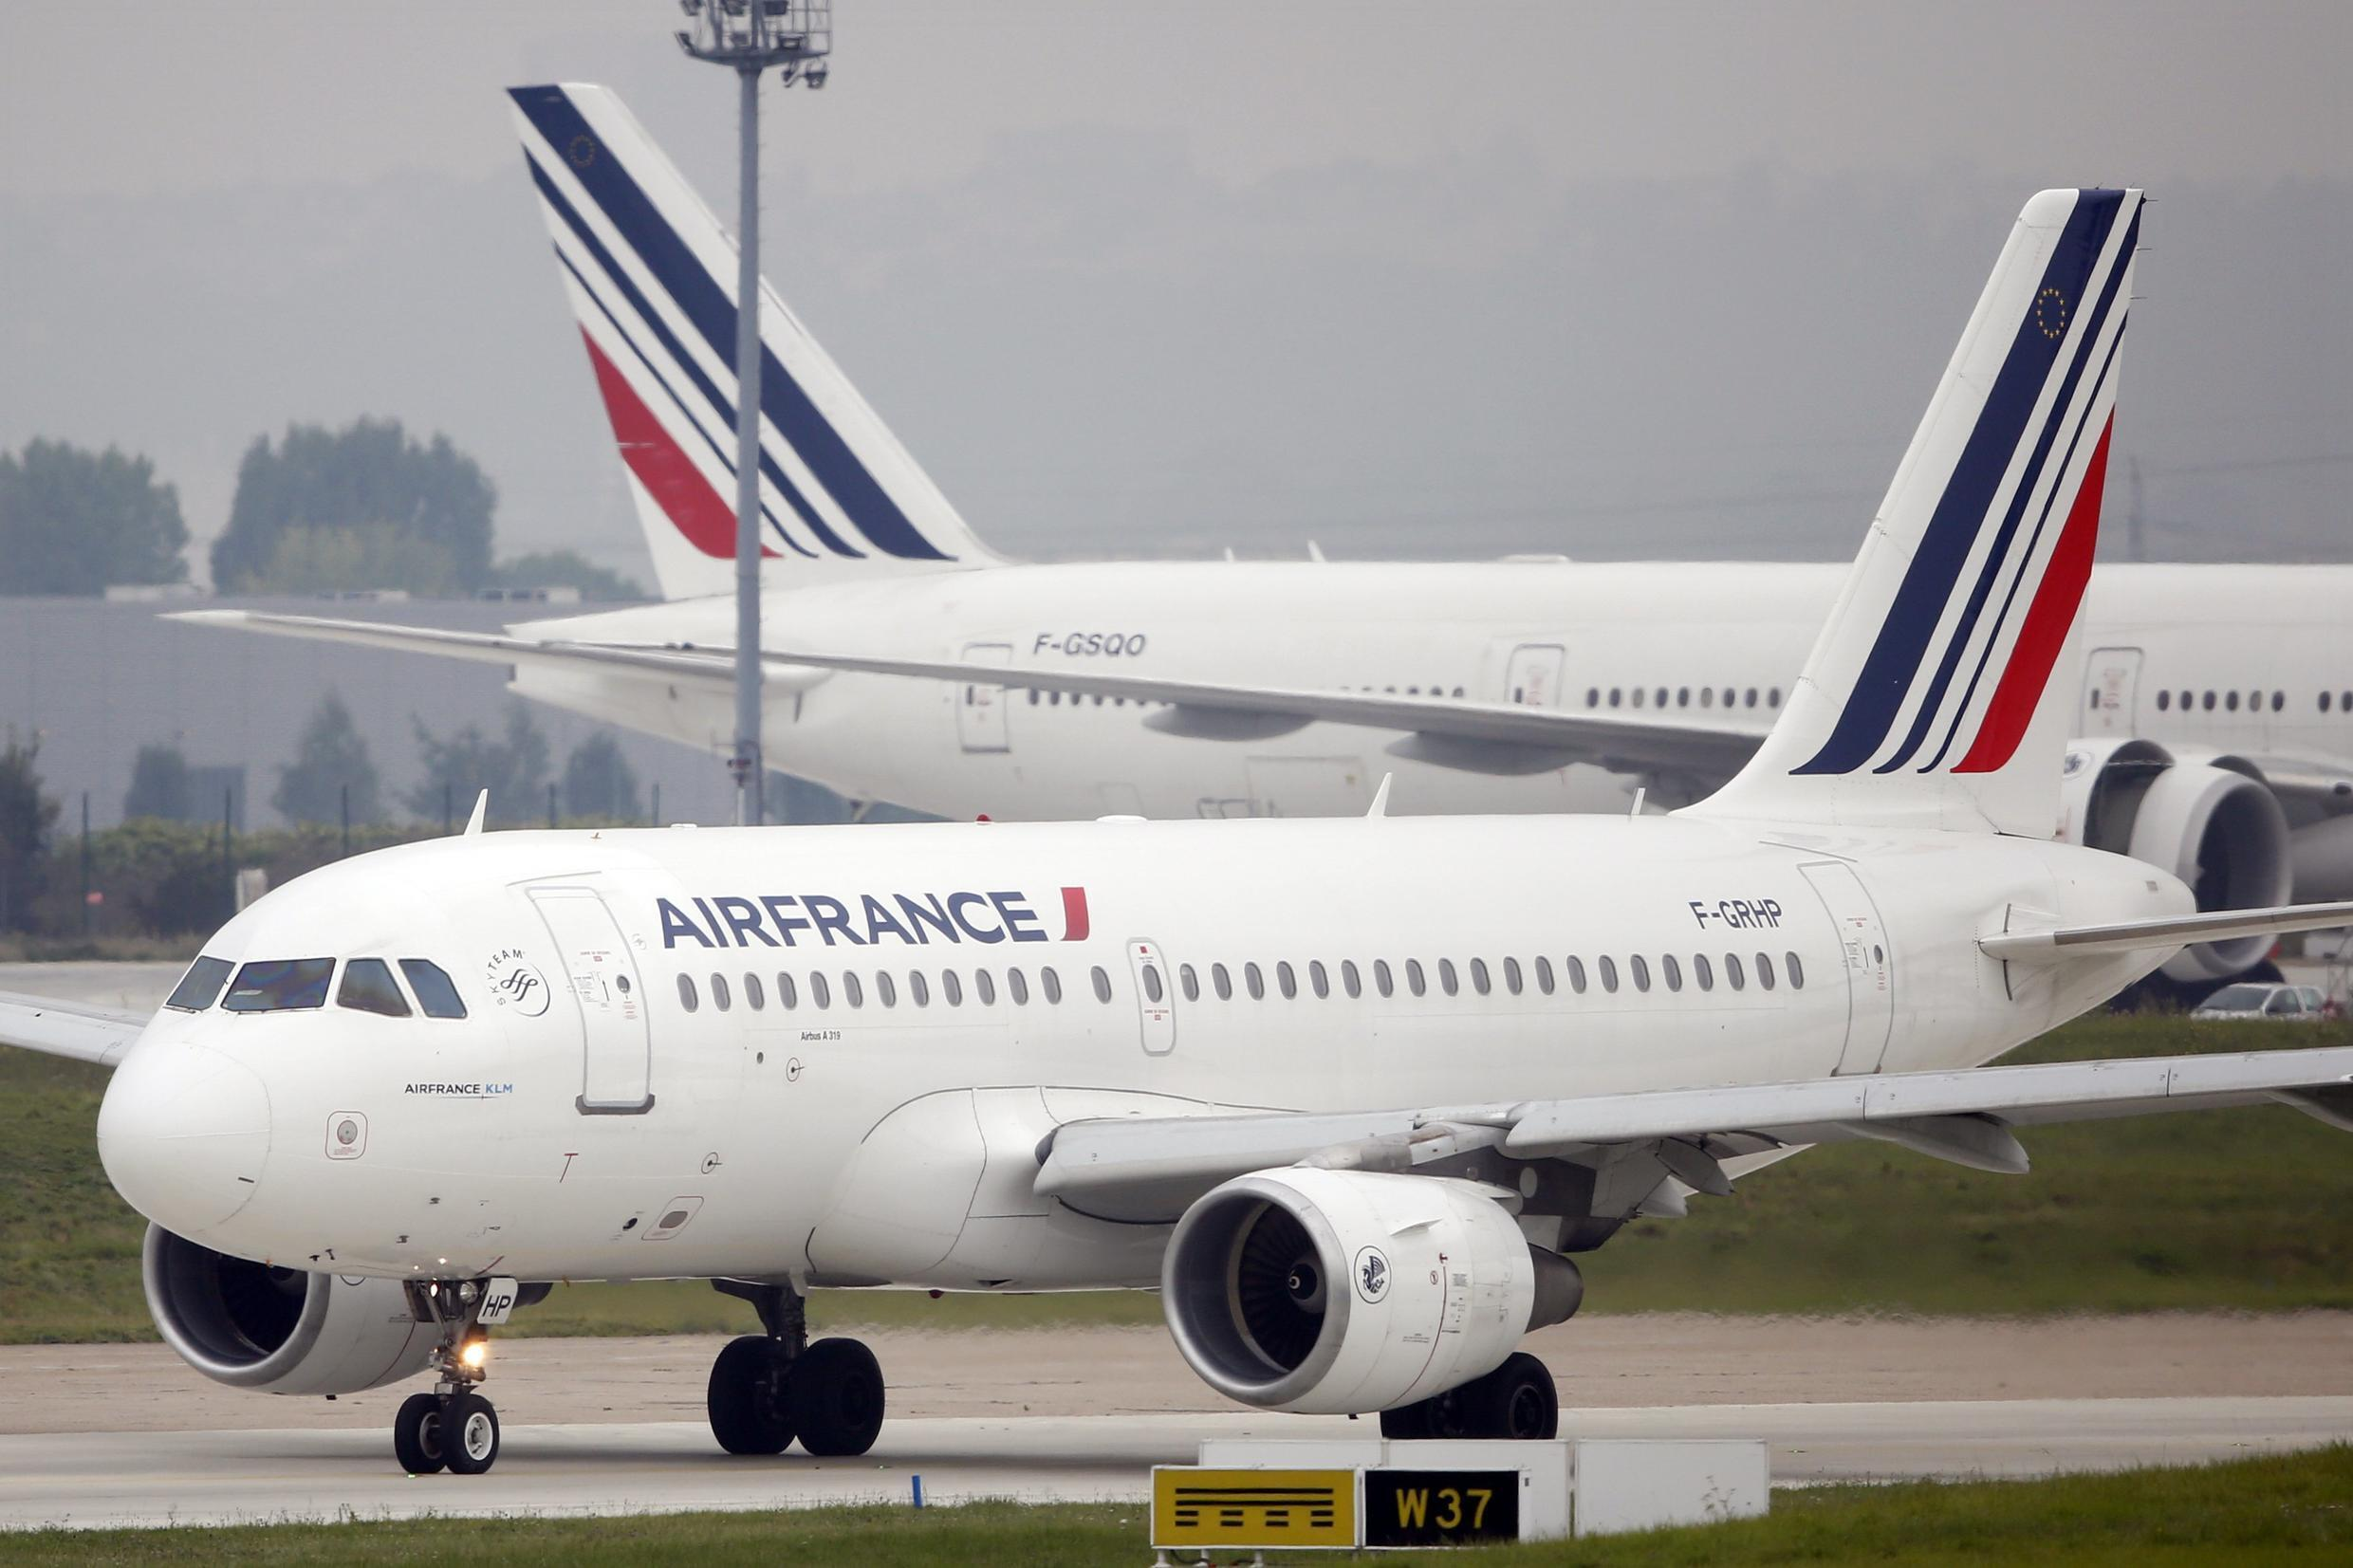 An Air France Airbus A319 at Orly airport